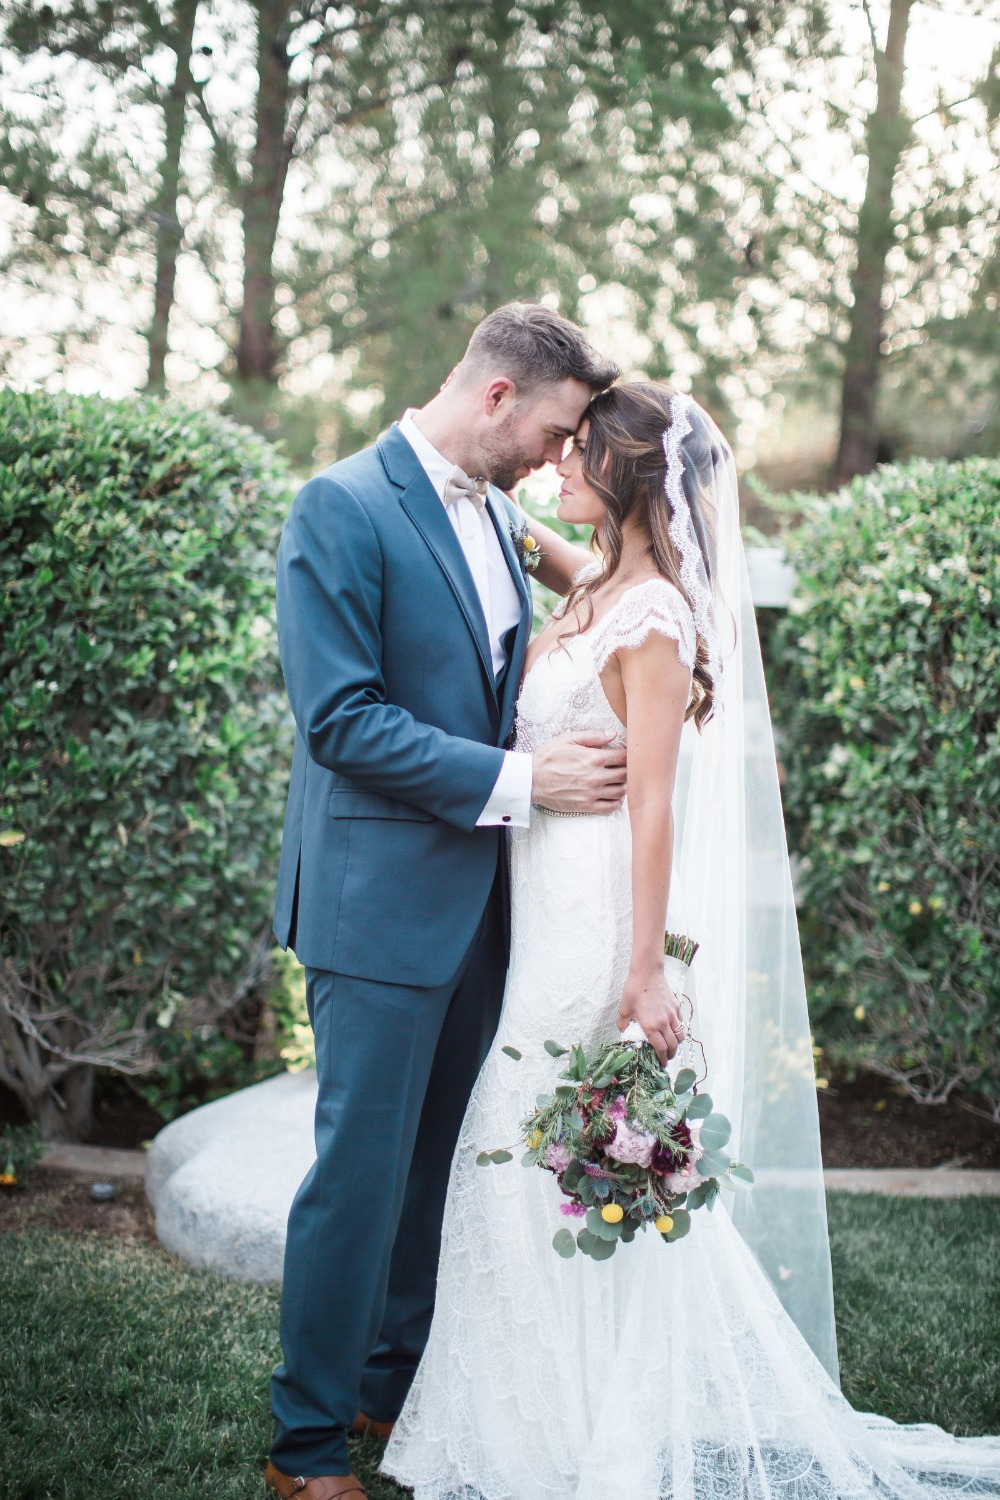 Gorgeous wedding for a beautiful couple